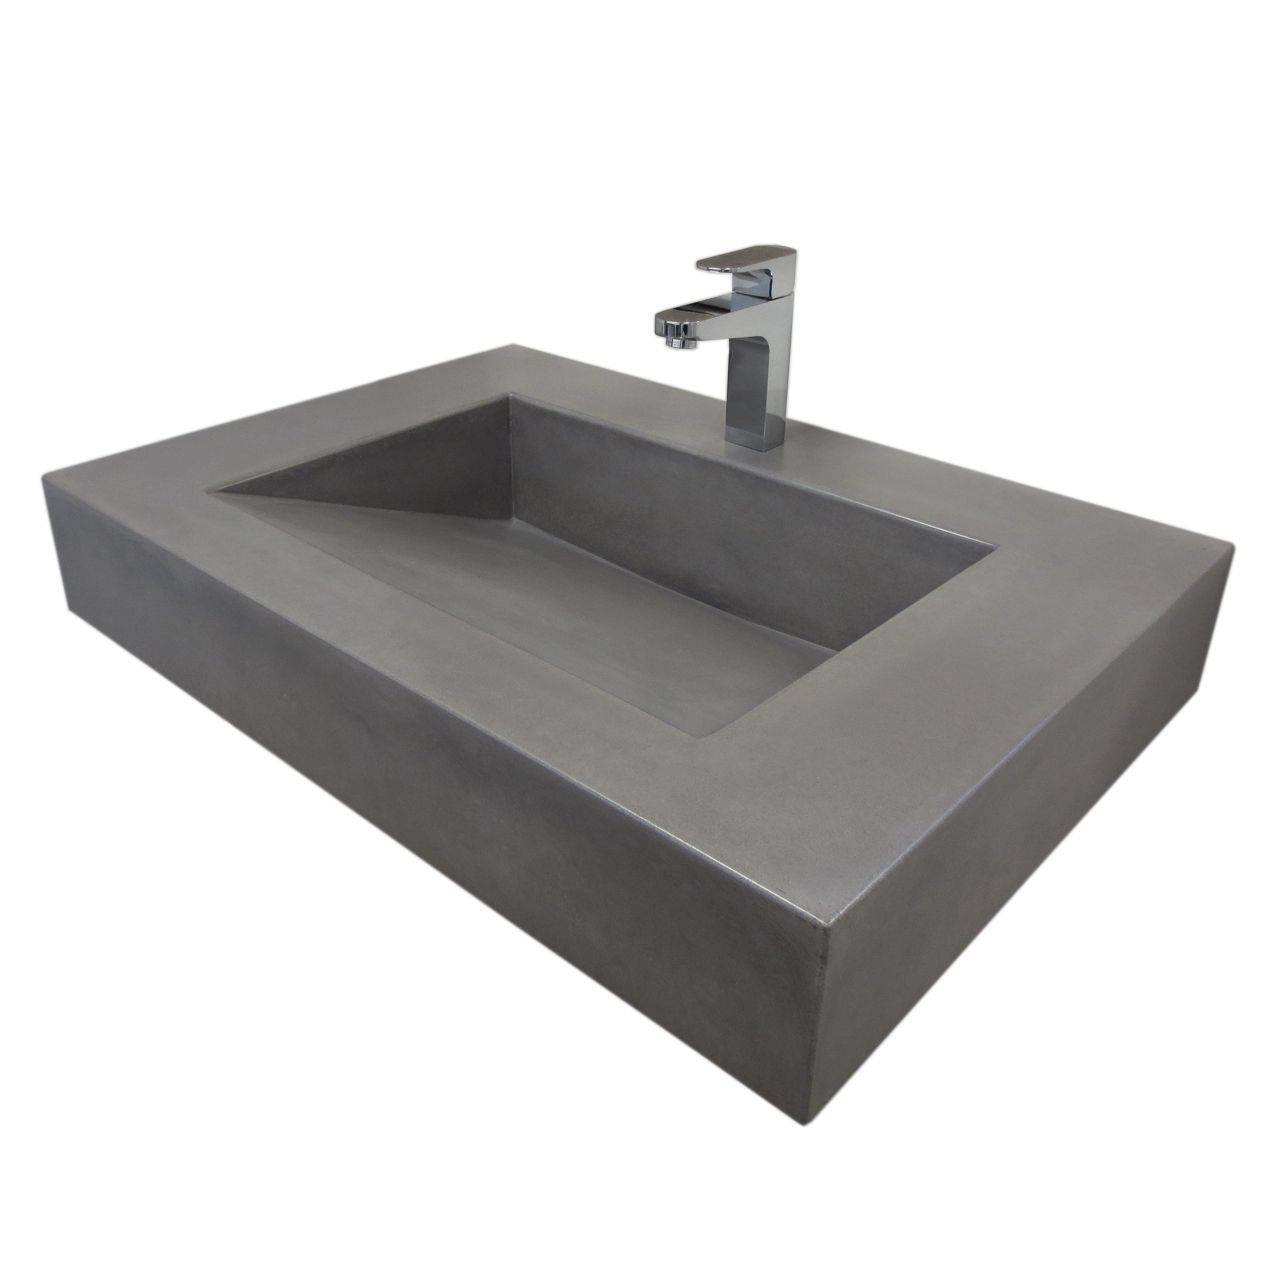 """Trueform 30"""" ADA Floating Concrete Sink designed for a restaurant, bar or hotel and meets requirements for thickness, set backs and clearances. Wharton, New Jersey."""